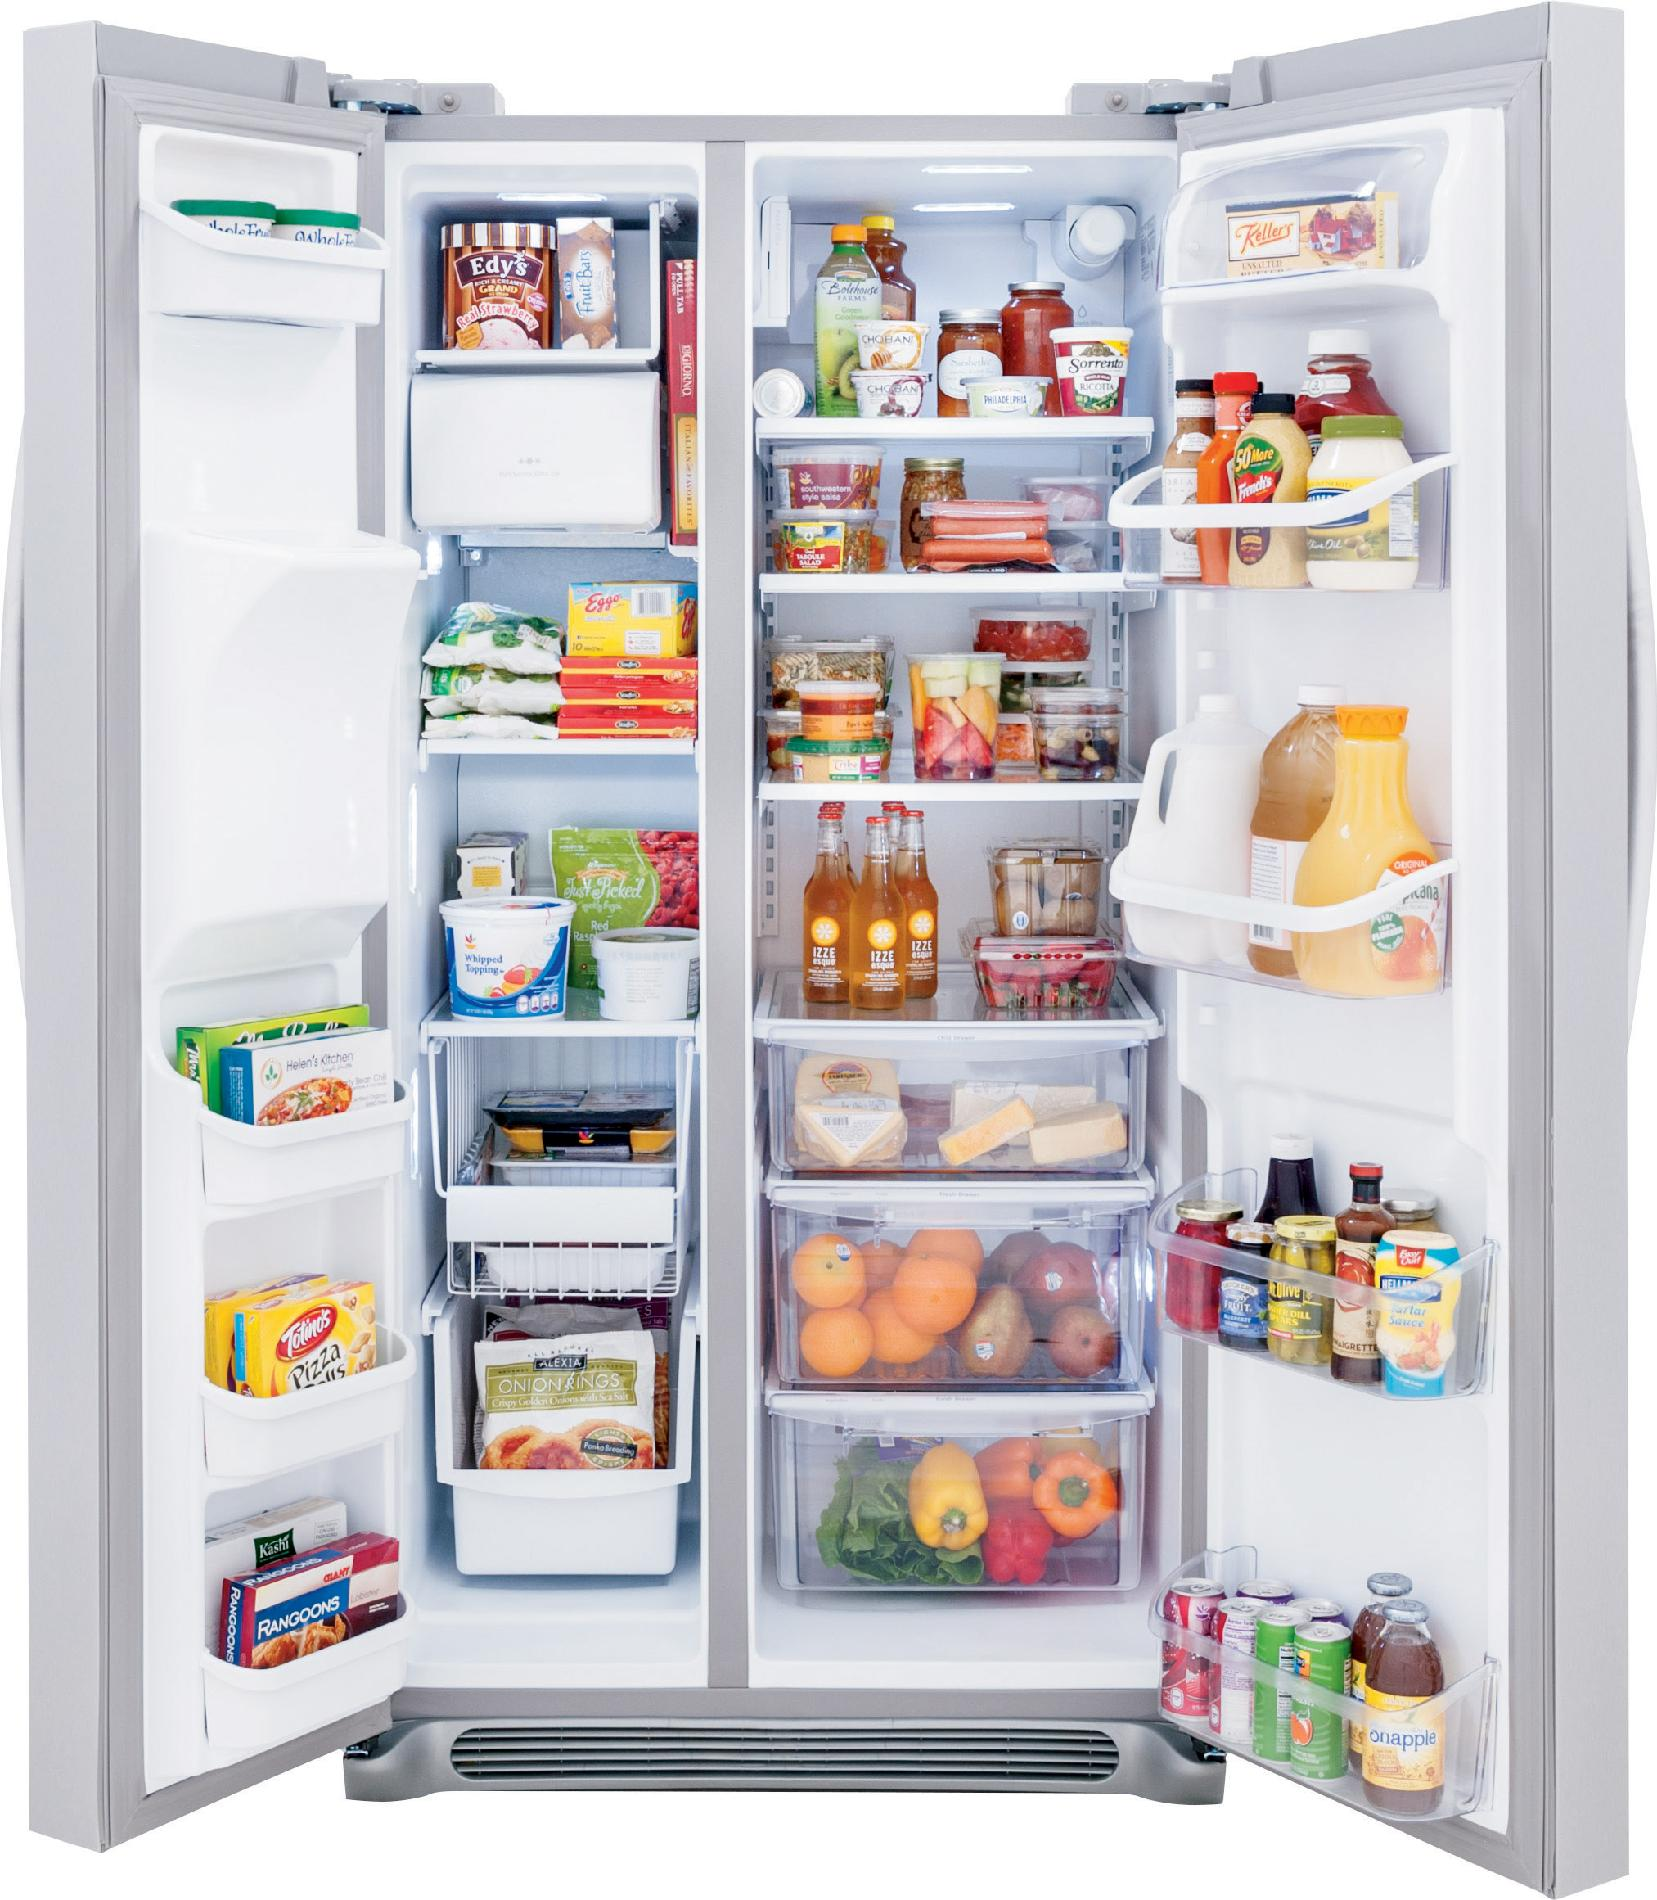 Frigidaire Gallery 22.6 cu. ft. Side-by-Side Refrigerator - Stainless Steel